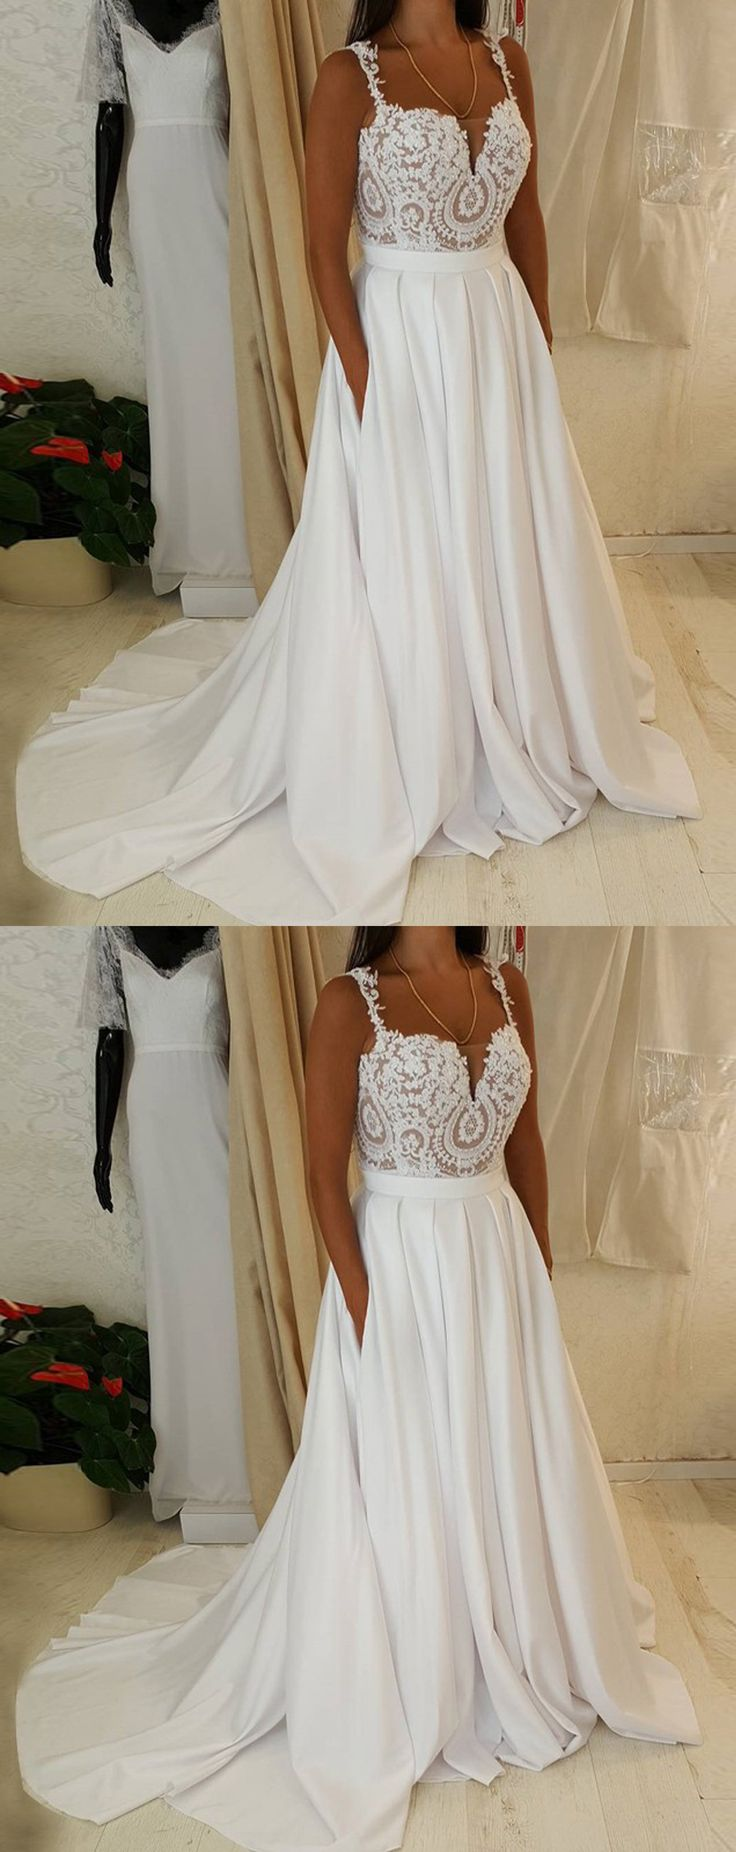 A-Line Wedding Dresses,Straps Wedding Dresses,Sweep Train Wedding Dresses,Satin Wedding Dresses,Chiffon Wedding Dresses,Pockets Wedding Dresses,Lace Wedding Dresses,Wedding Dresses 2017